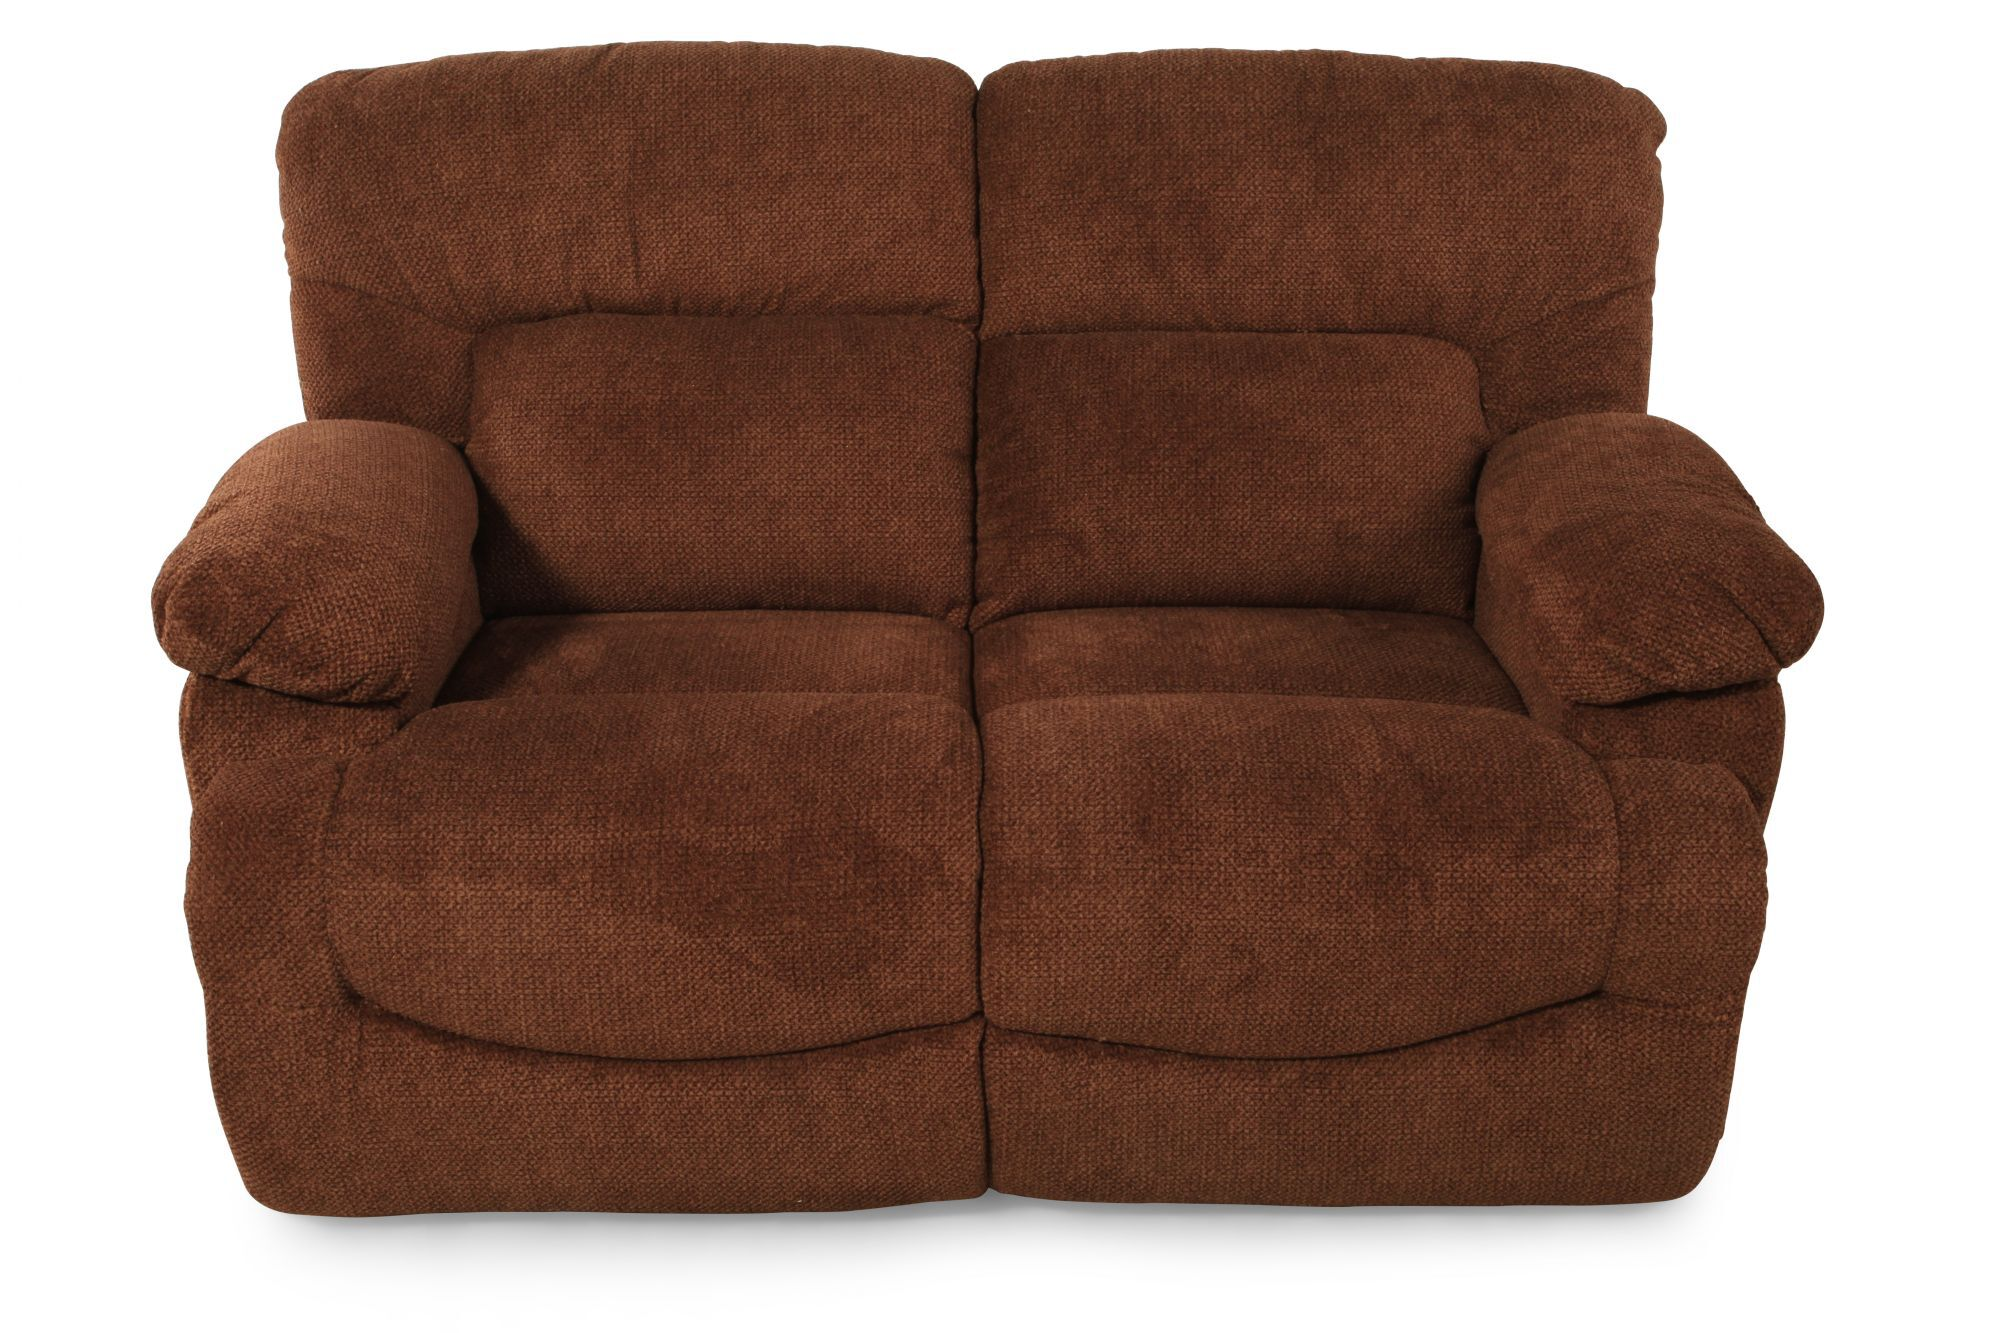 La-Z-Boy Asher Caramel Reclining Loveseat  sc 1 st  Mathis Brothers : lazy boy love seat recliner - islam-shia.org